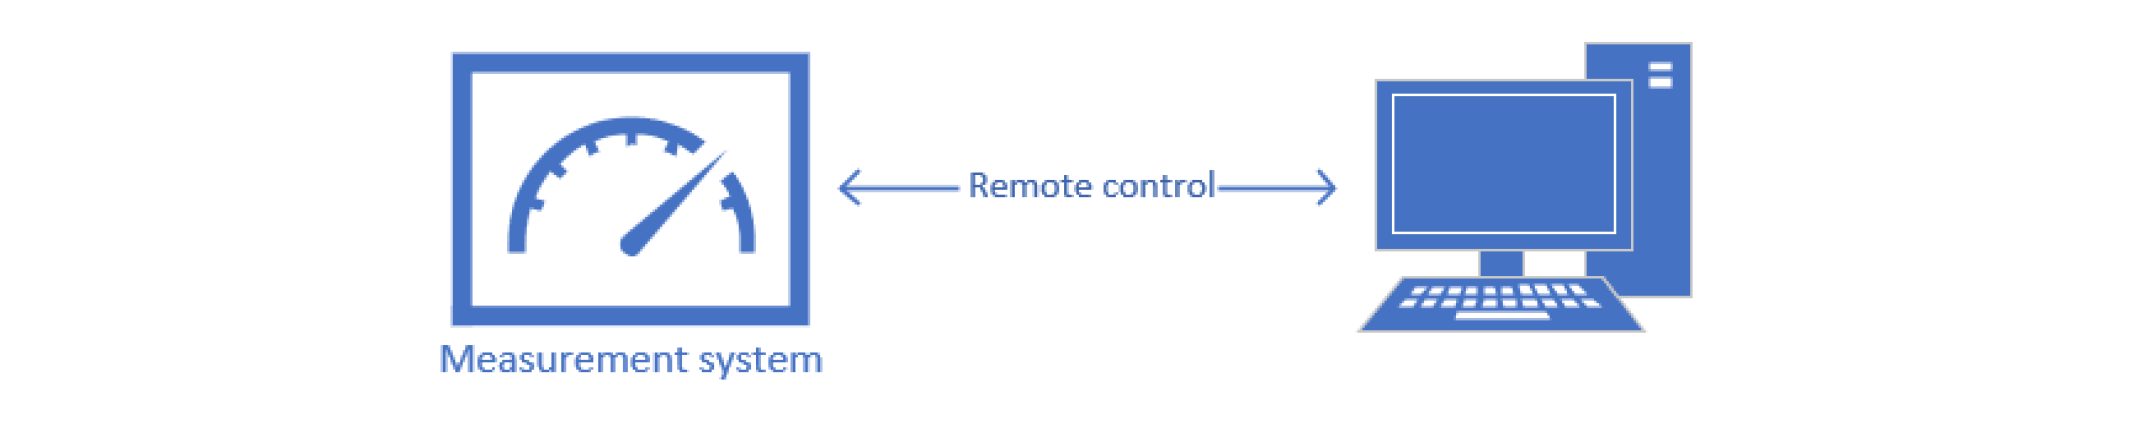 schematic representation of remote control